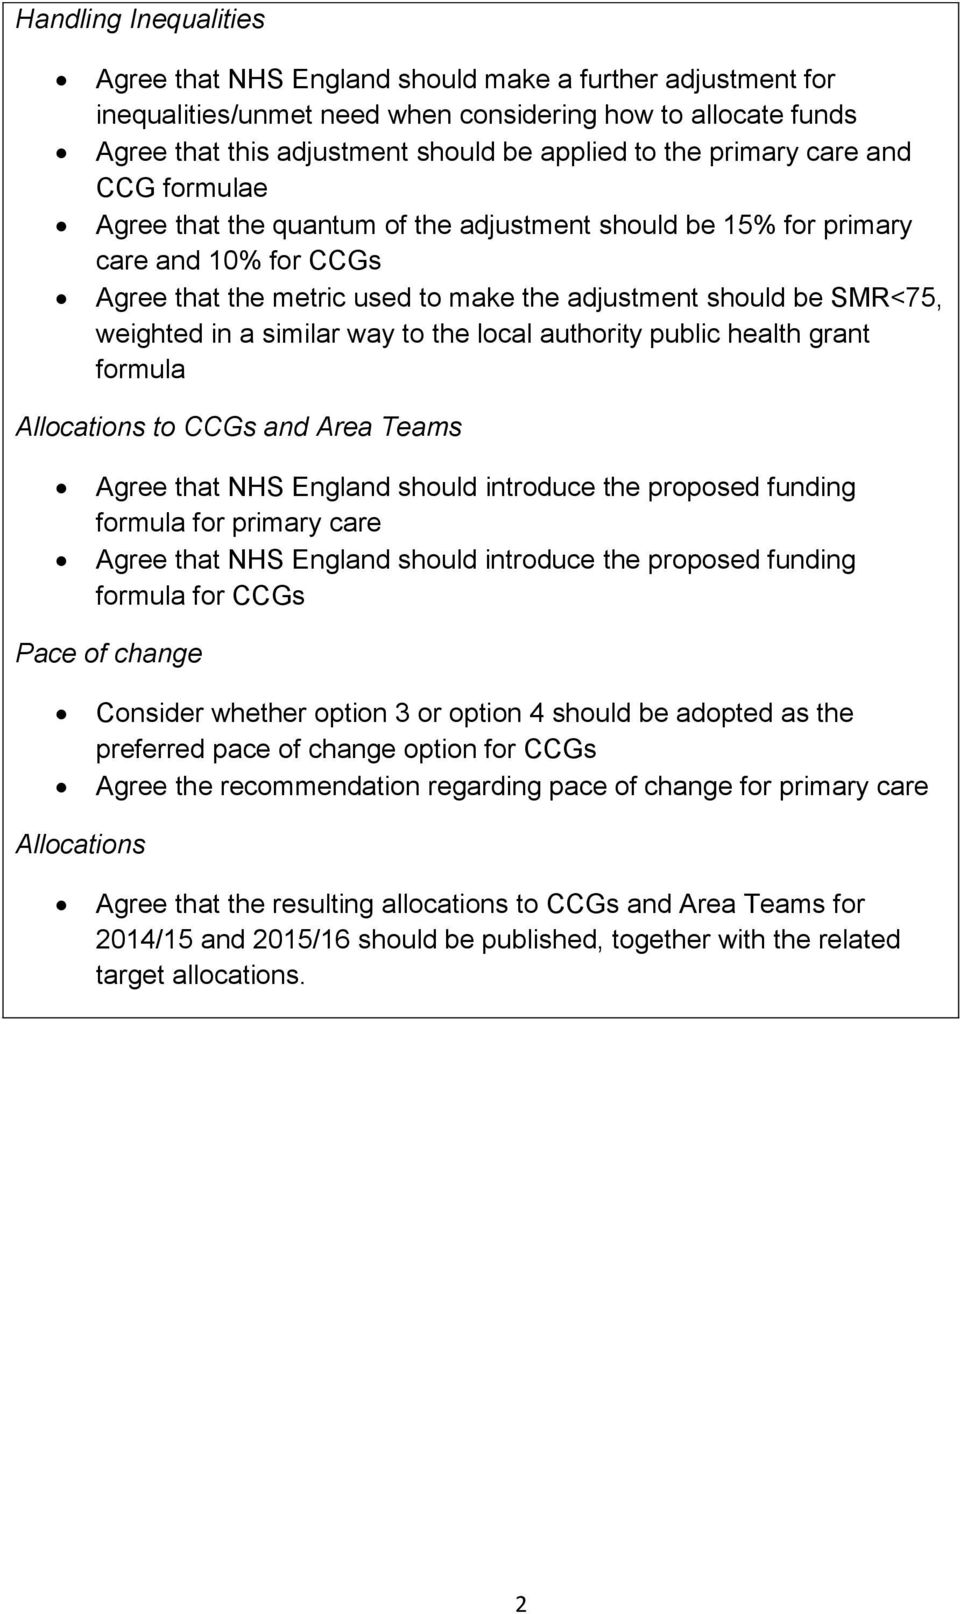 a similar way to the local authority public health grant formula Allocations to CCGs and Area Teams Agree that NHS England should introduce the proposed funding formula for primary care Agree that